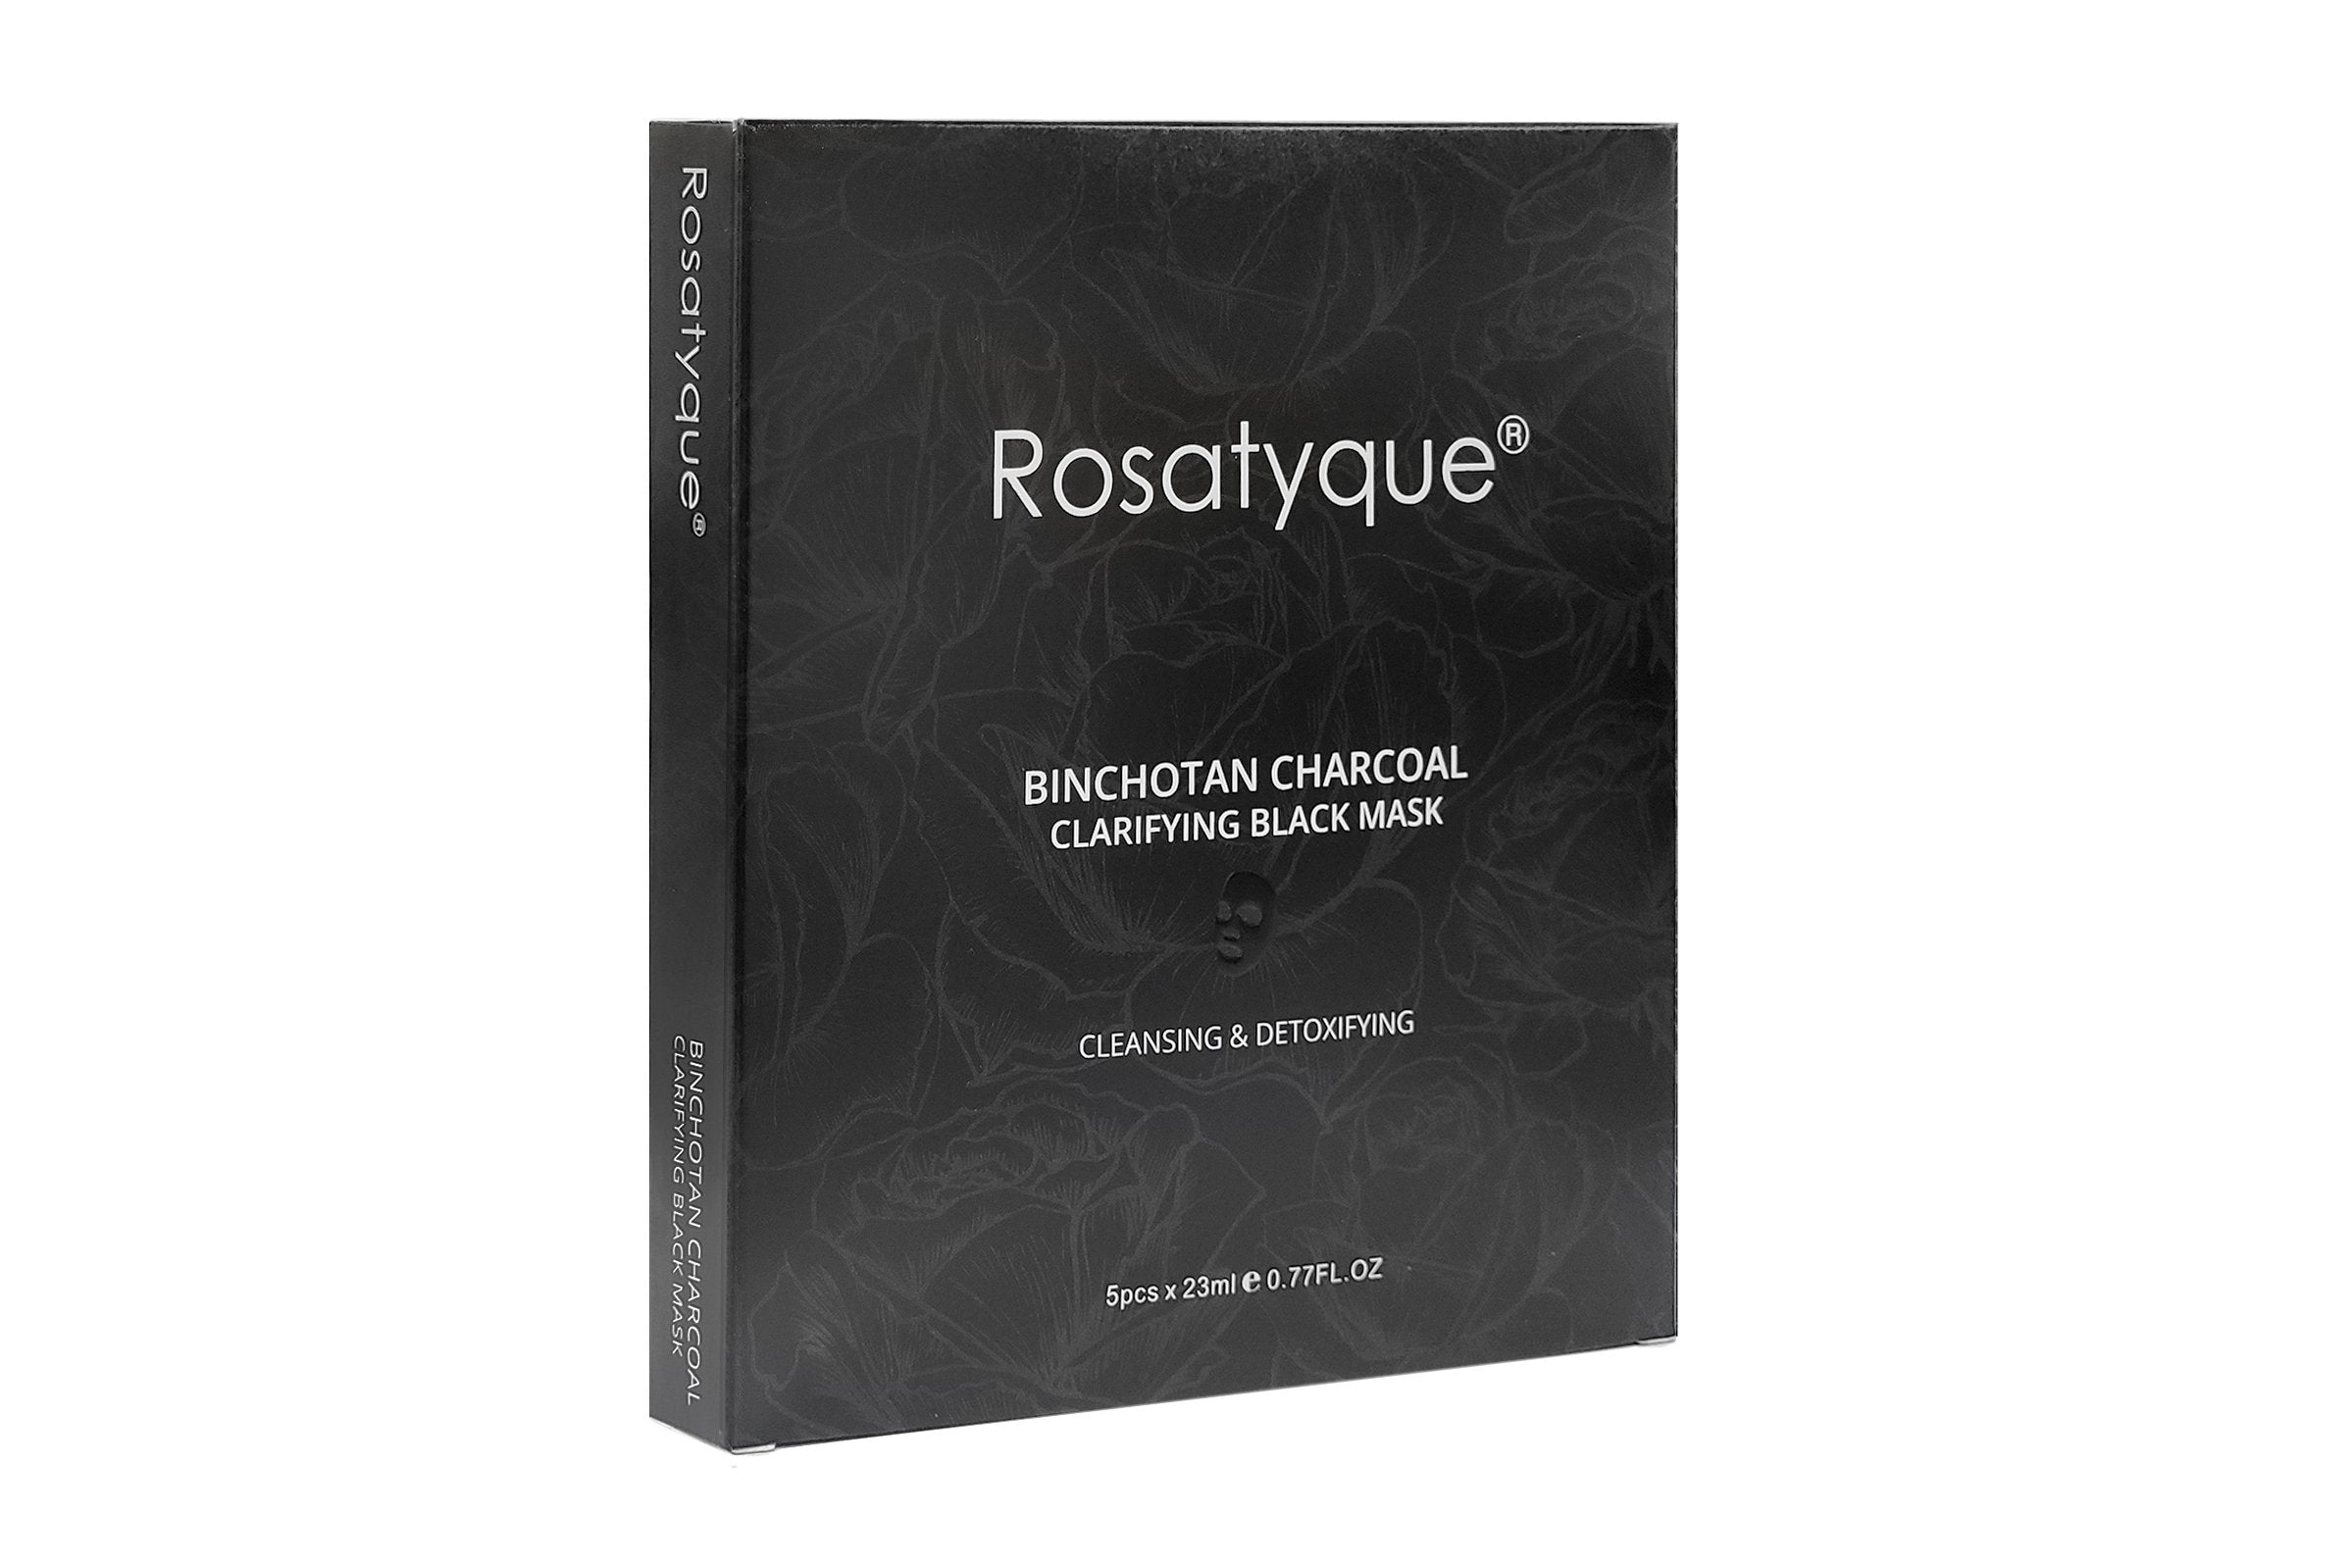 Rosatyque Binchotan Charcoal Clarifying Black Mask Box 5pcs - Rosatyque